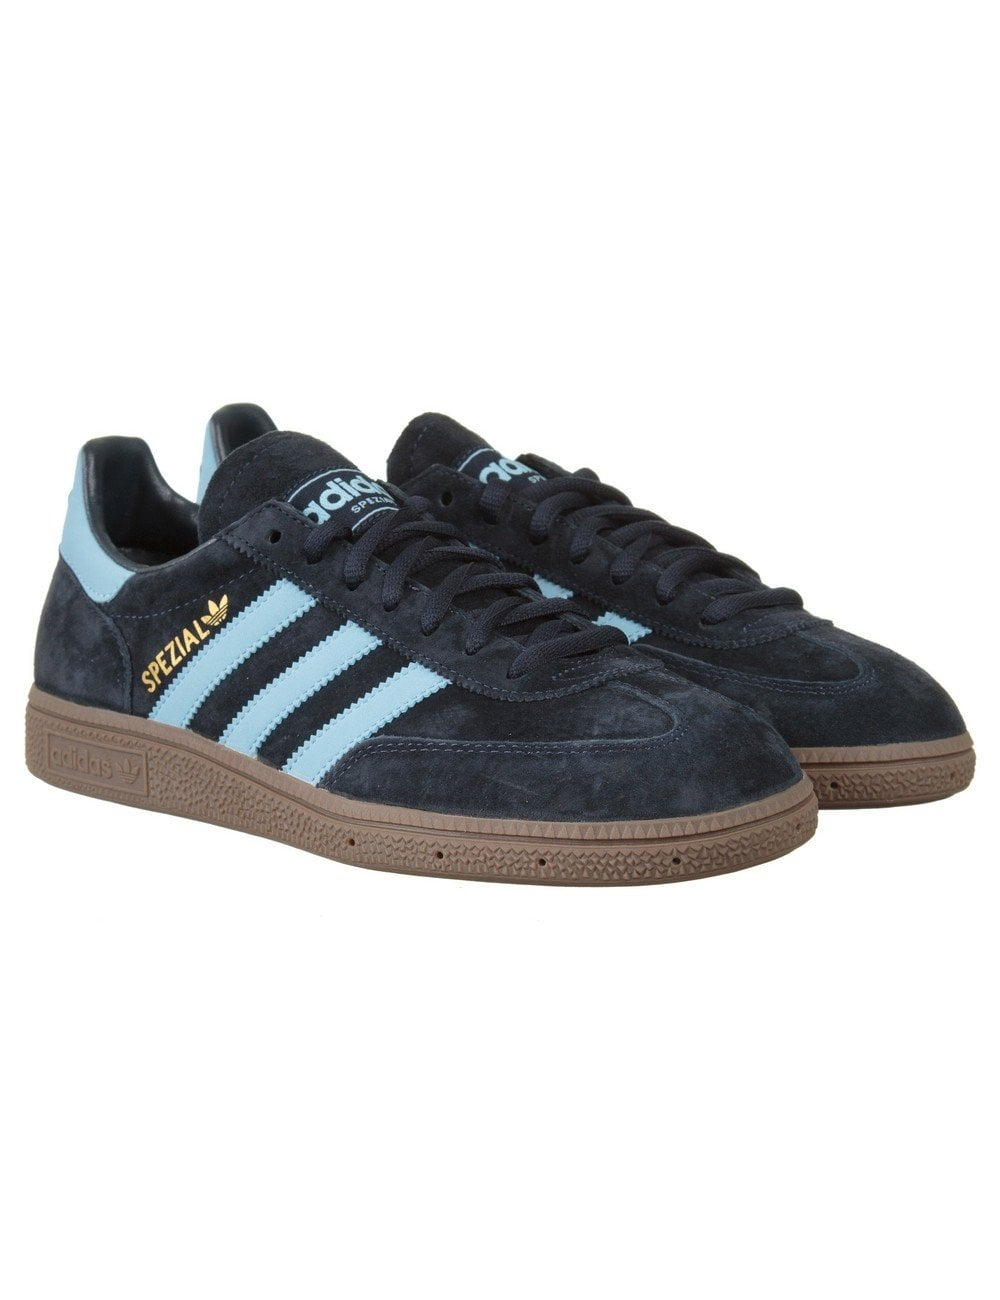 Adidas Originals Spezial Shoes - Dark Navy Argentina - Footwear from ... 30d01e63db